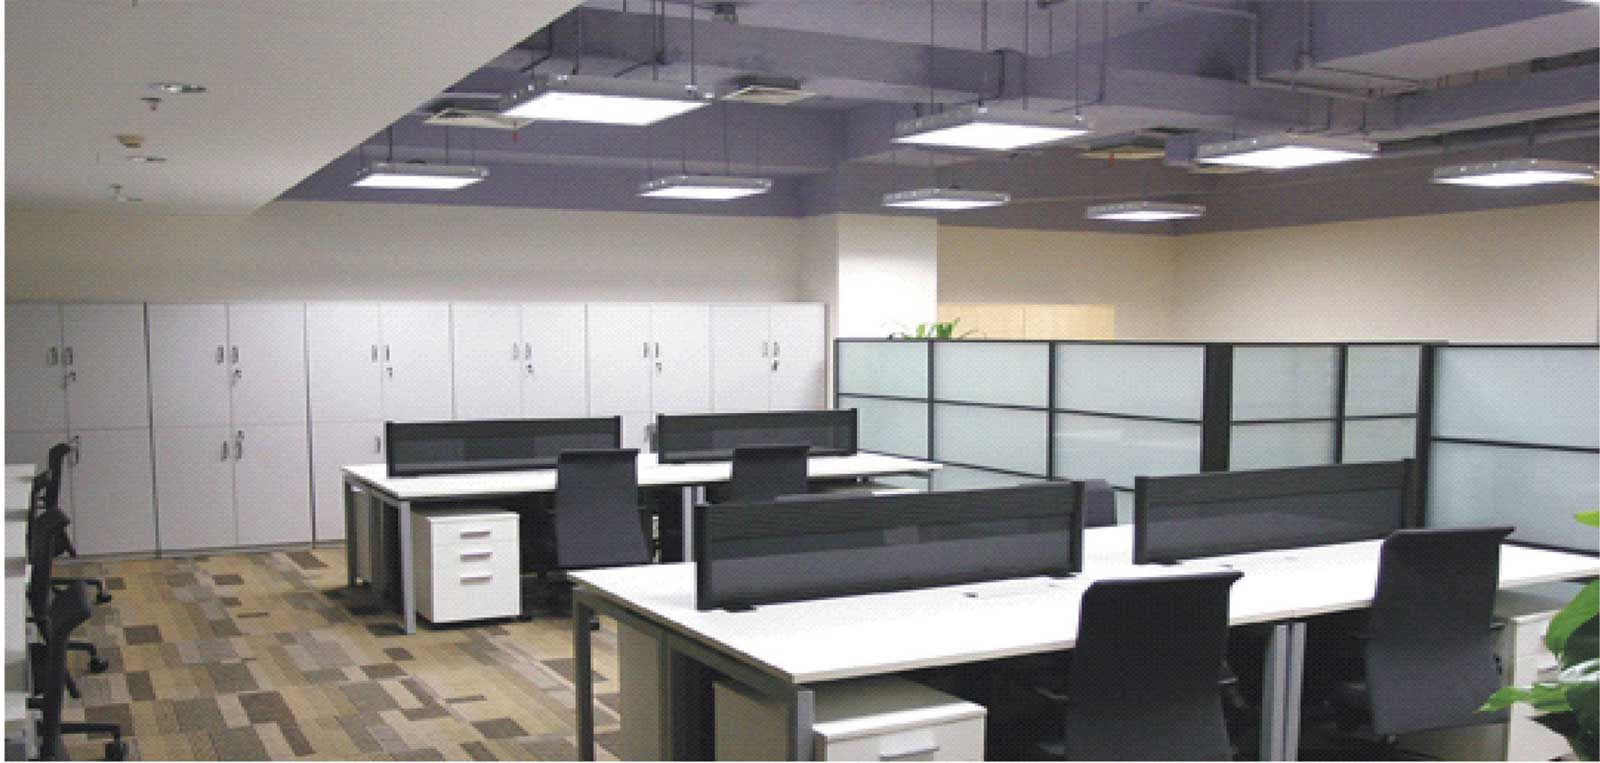 Corporate Office Design Ideas these glass walled workrooms provide personal space without feeling stifled or claustrophobic Corporate Office Lightning Design Ideas